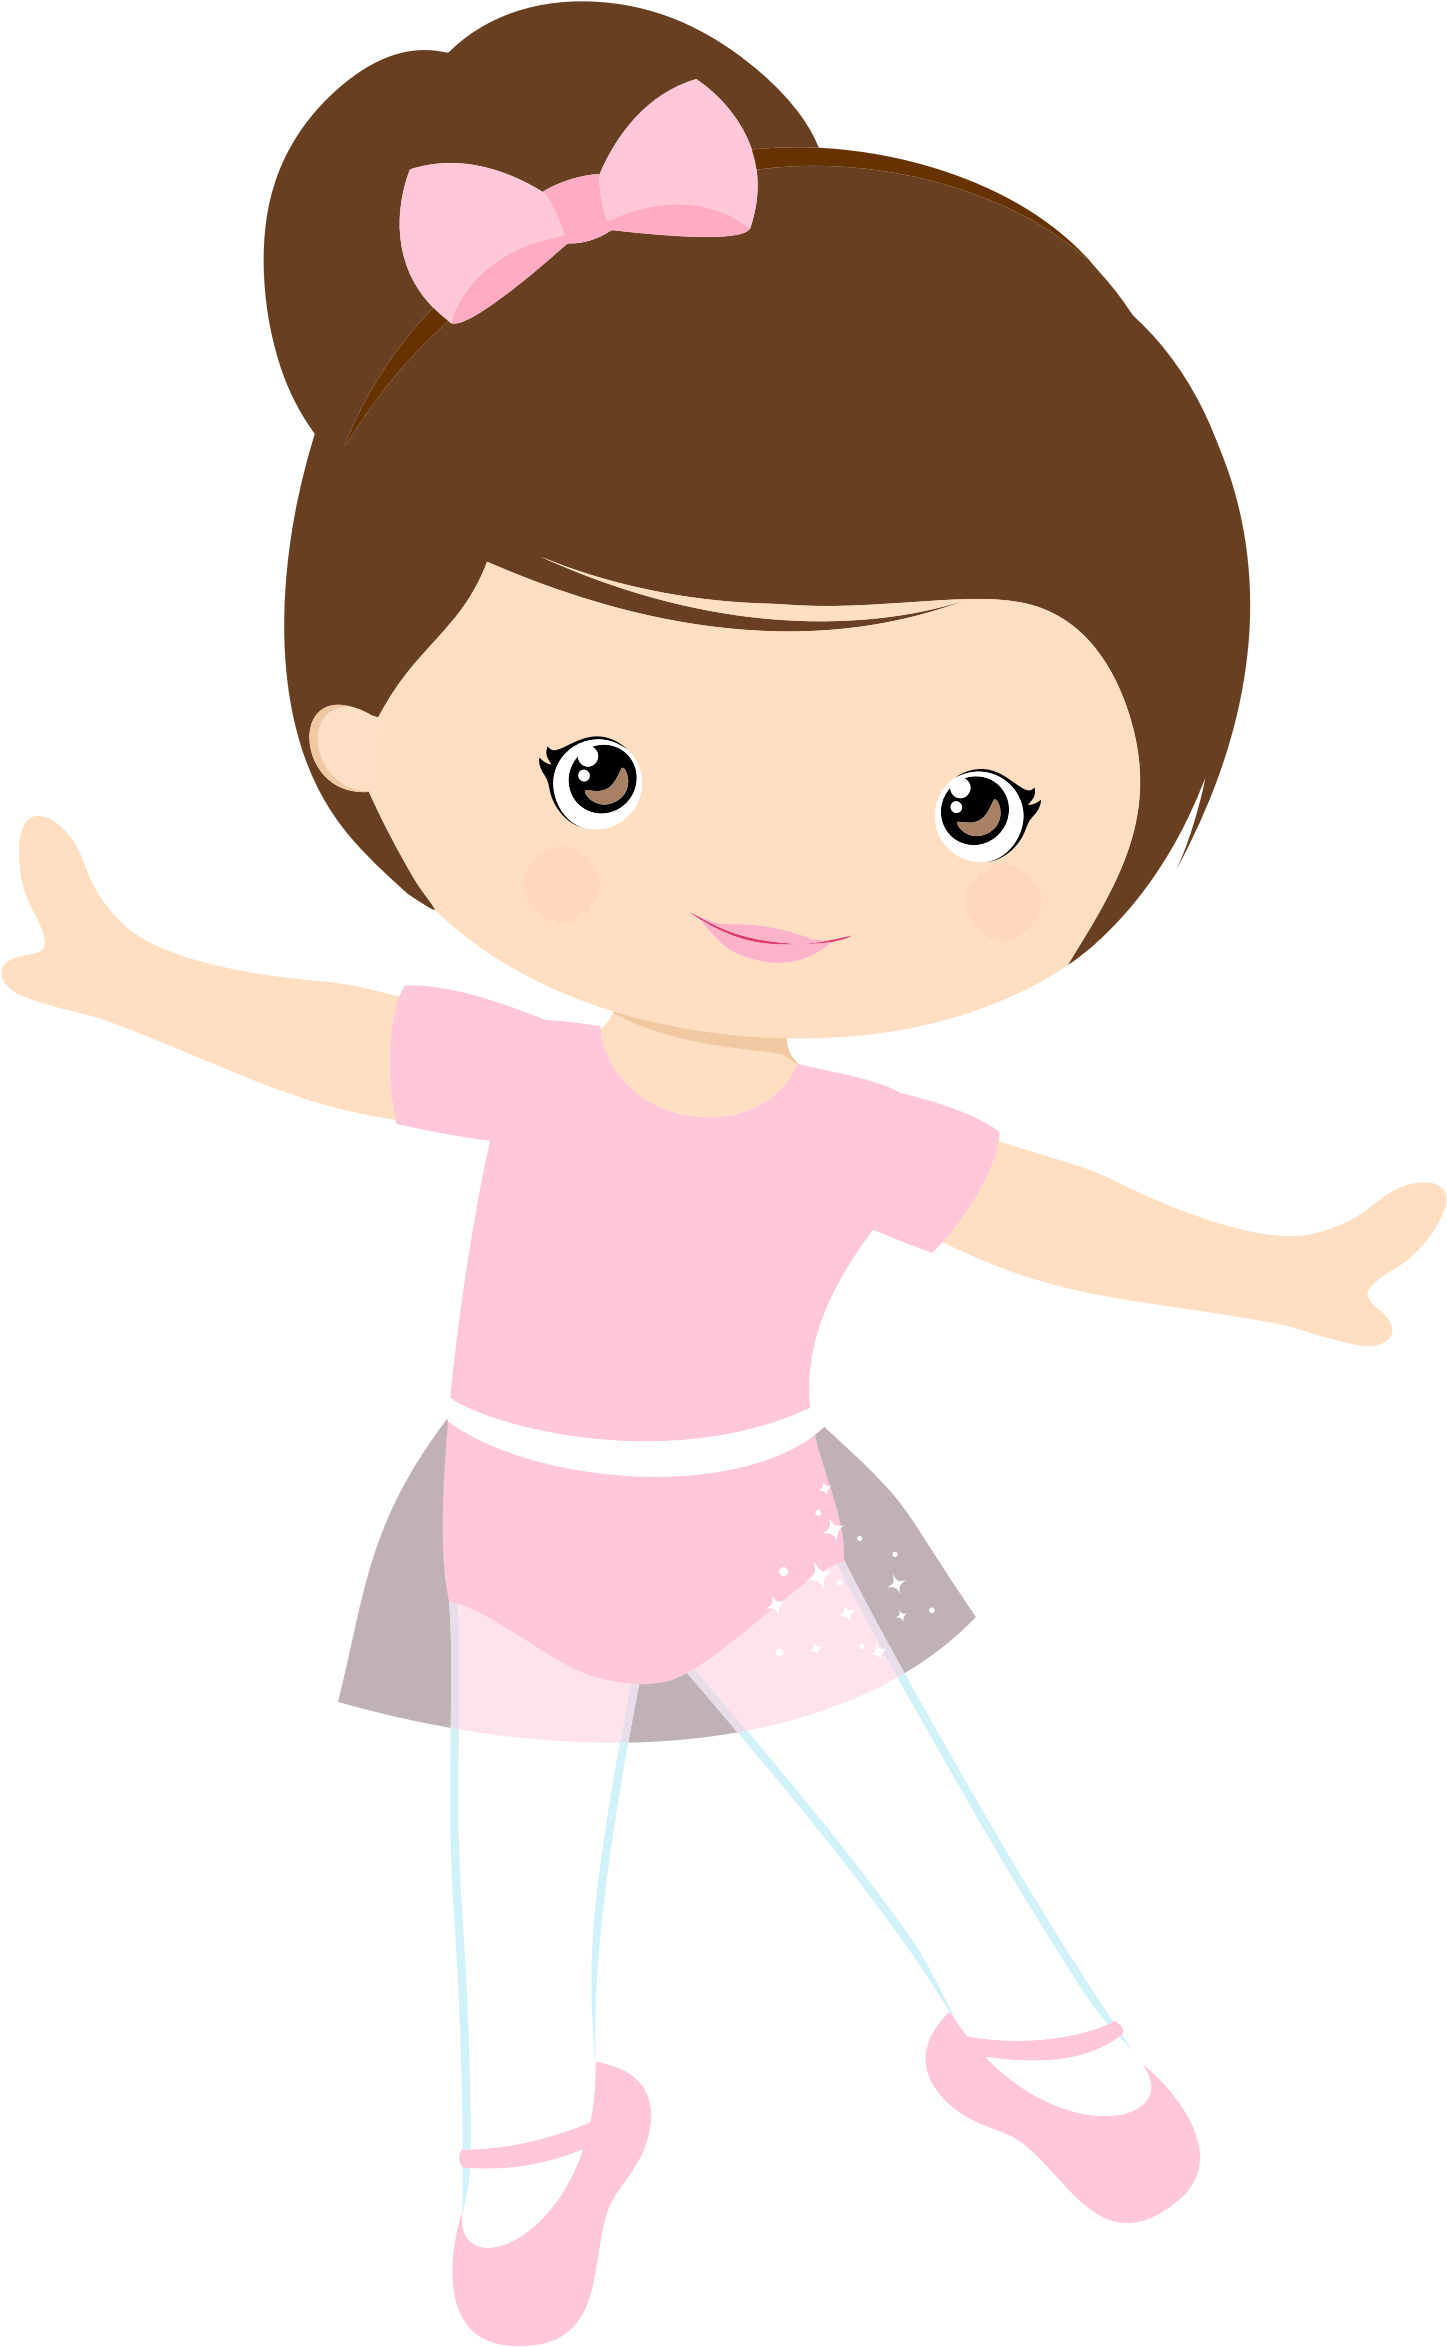 Female clipart dancing. Little girl clip art